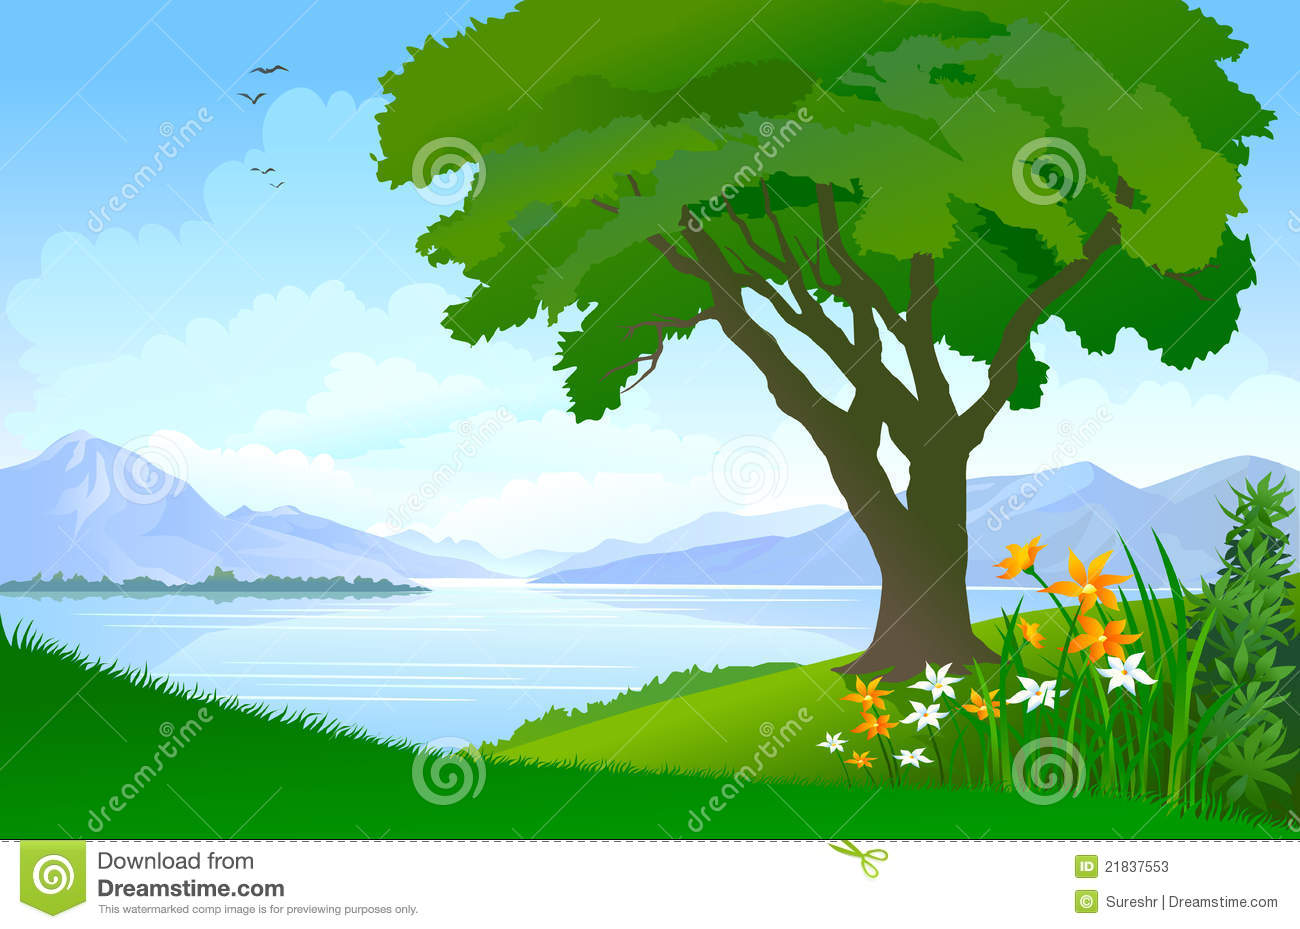 Wilderness clipart tress Clip Tree the Lake Clipground